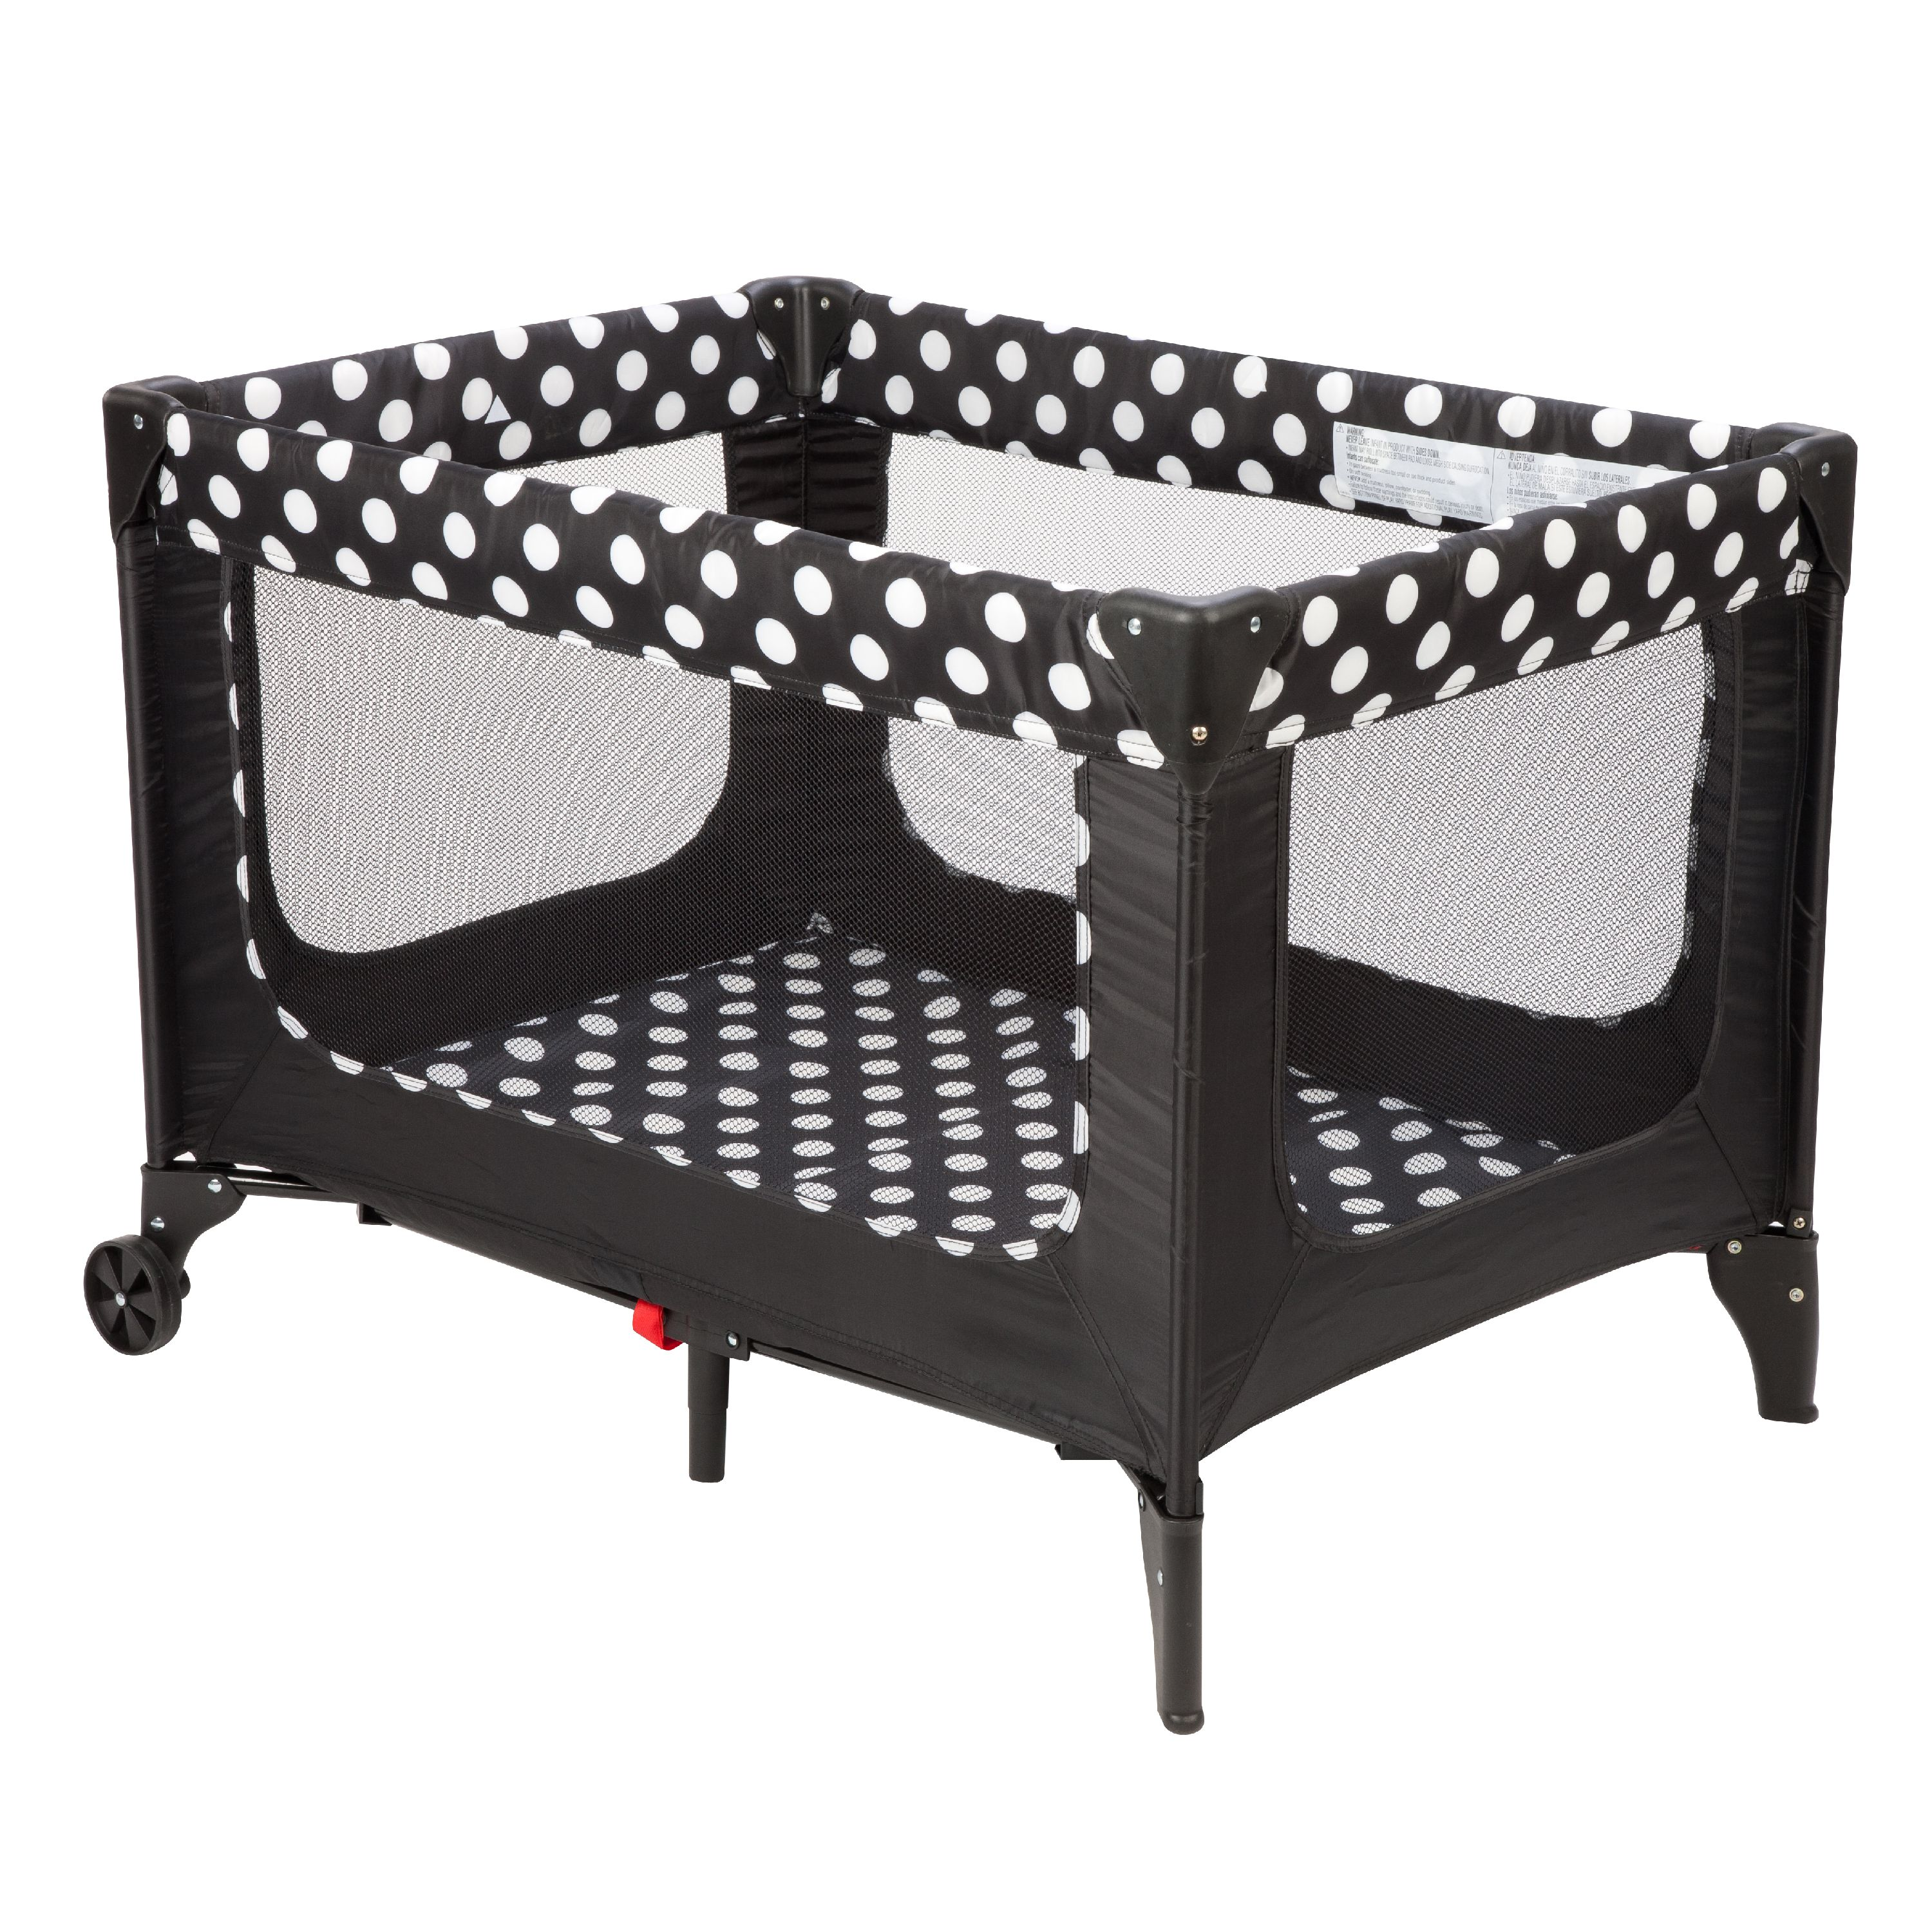 Cosco Funsport Play Yard, Retro Dot